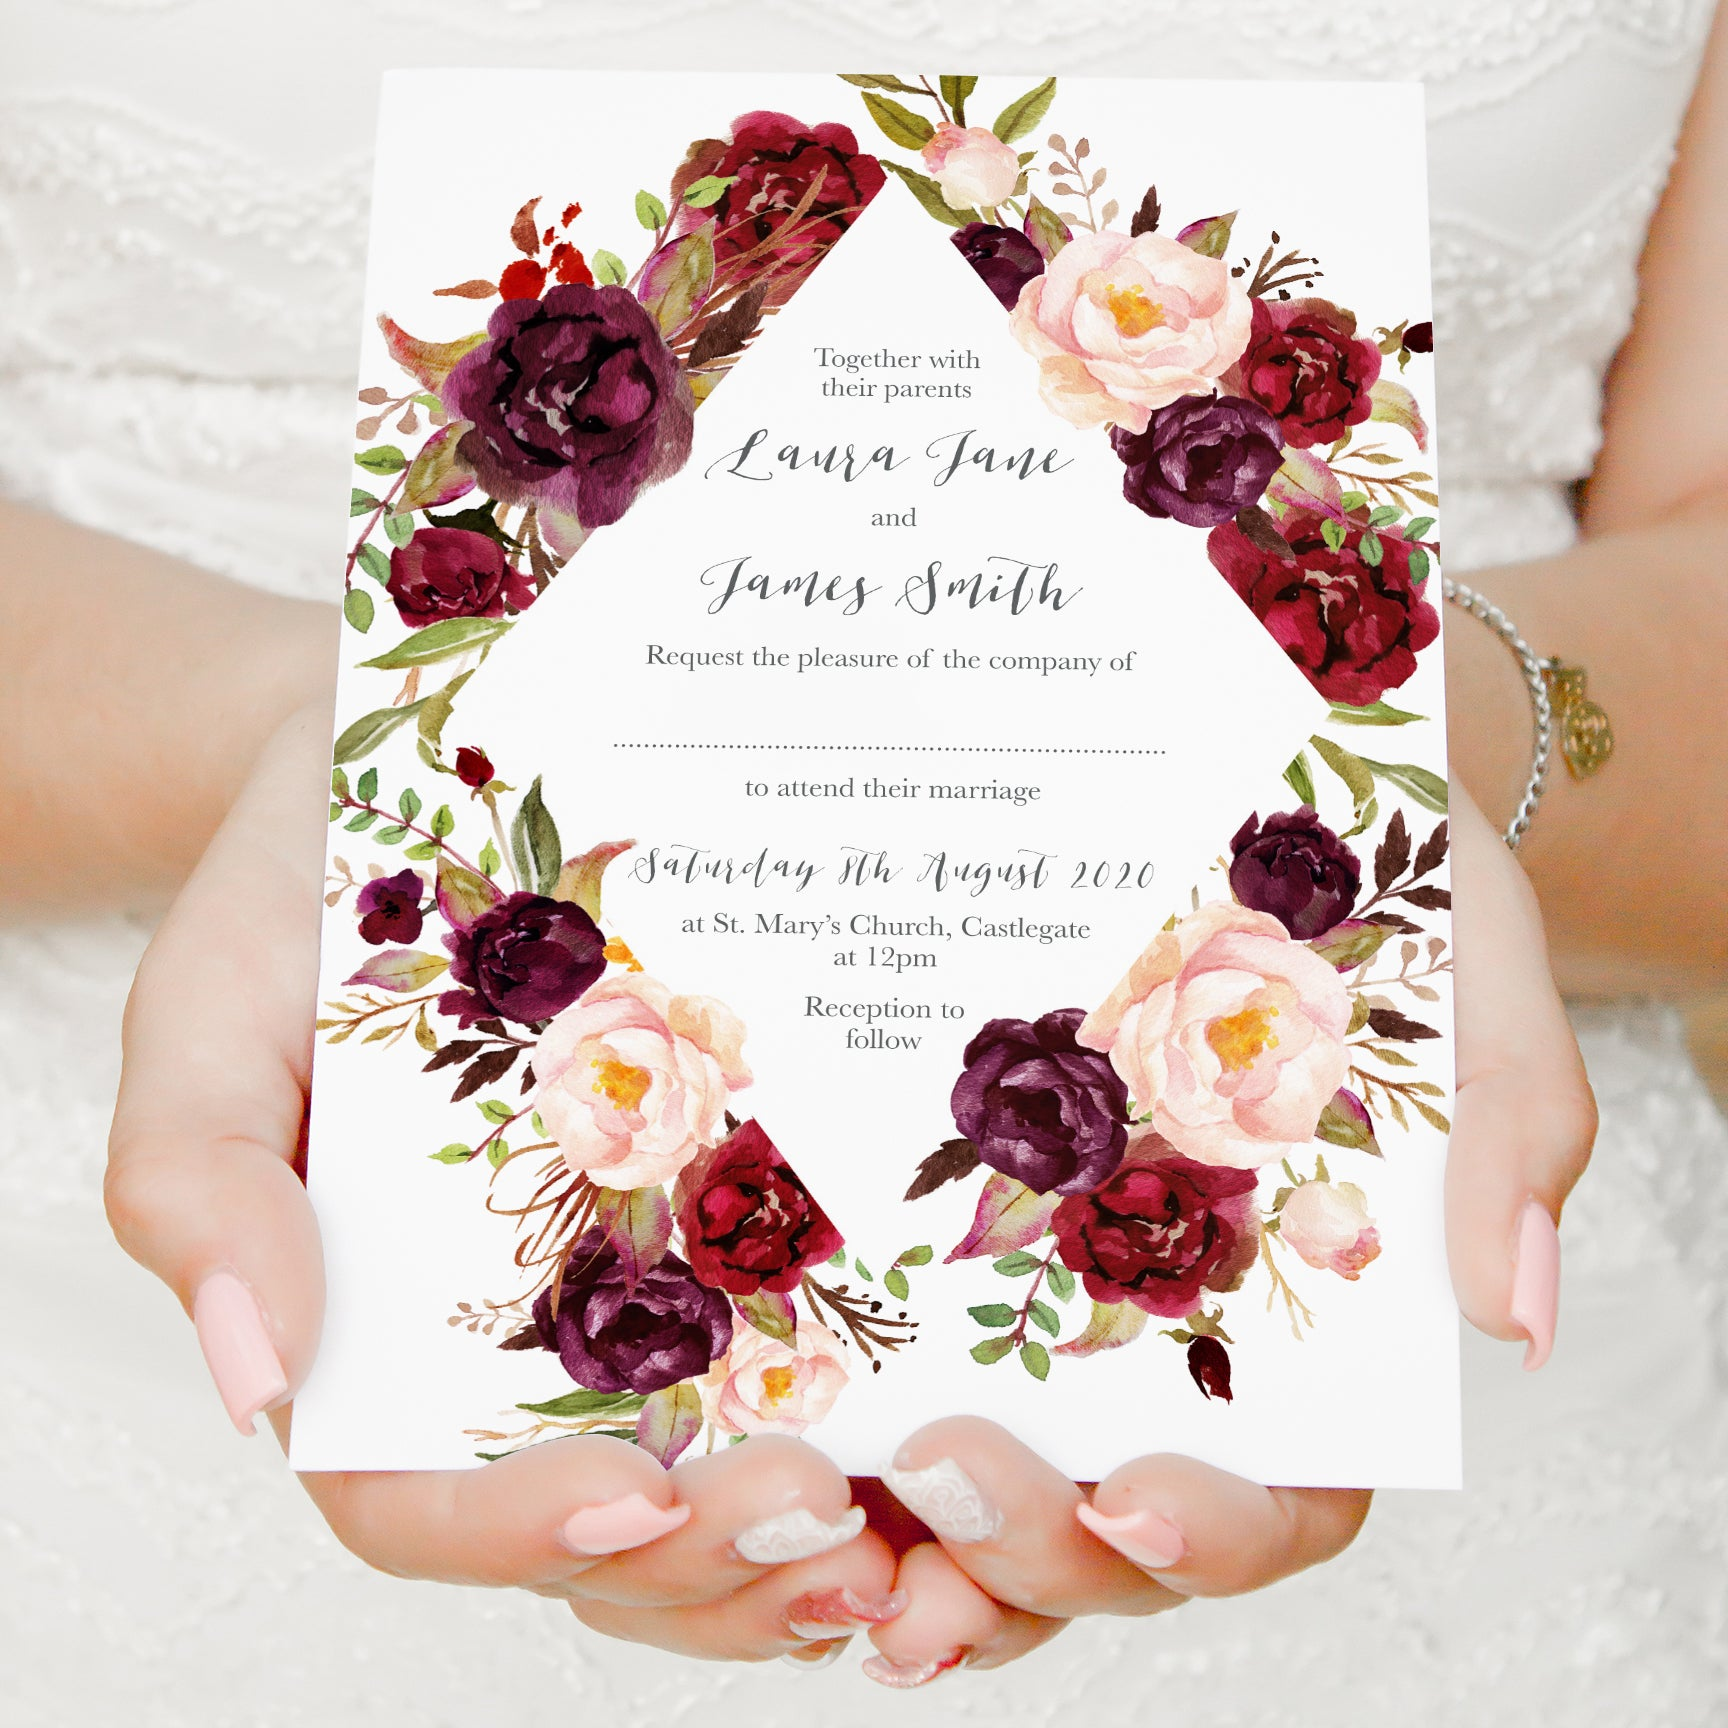 Wedding Invitations With Red Roses: Boho Red Rose Wedding Invitations, Diamond Wreath